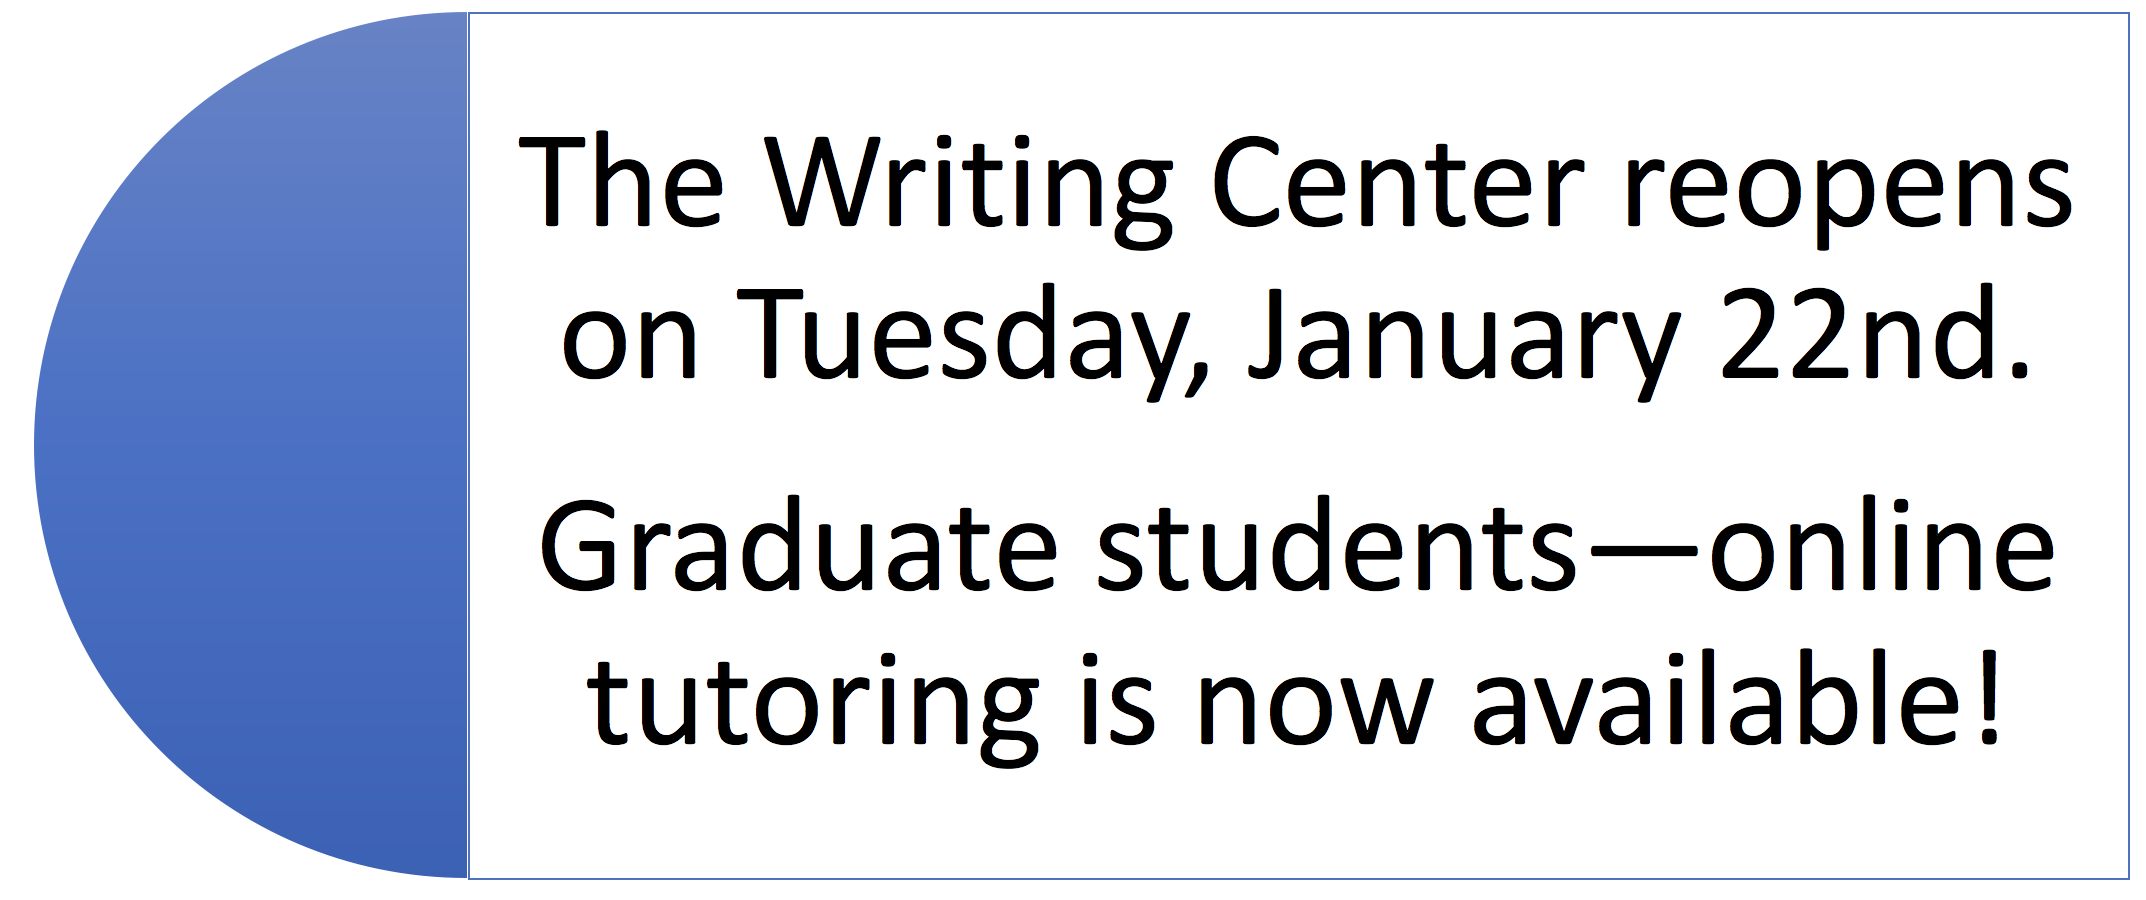 The Writing Center reopens on Tuesday, January 22nd.  Graduate students—online tutoring is now available!